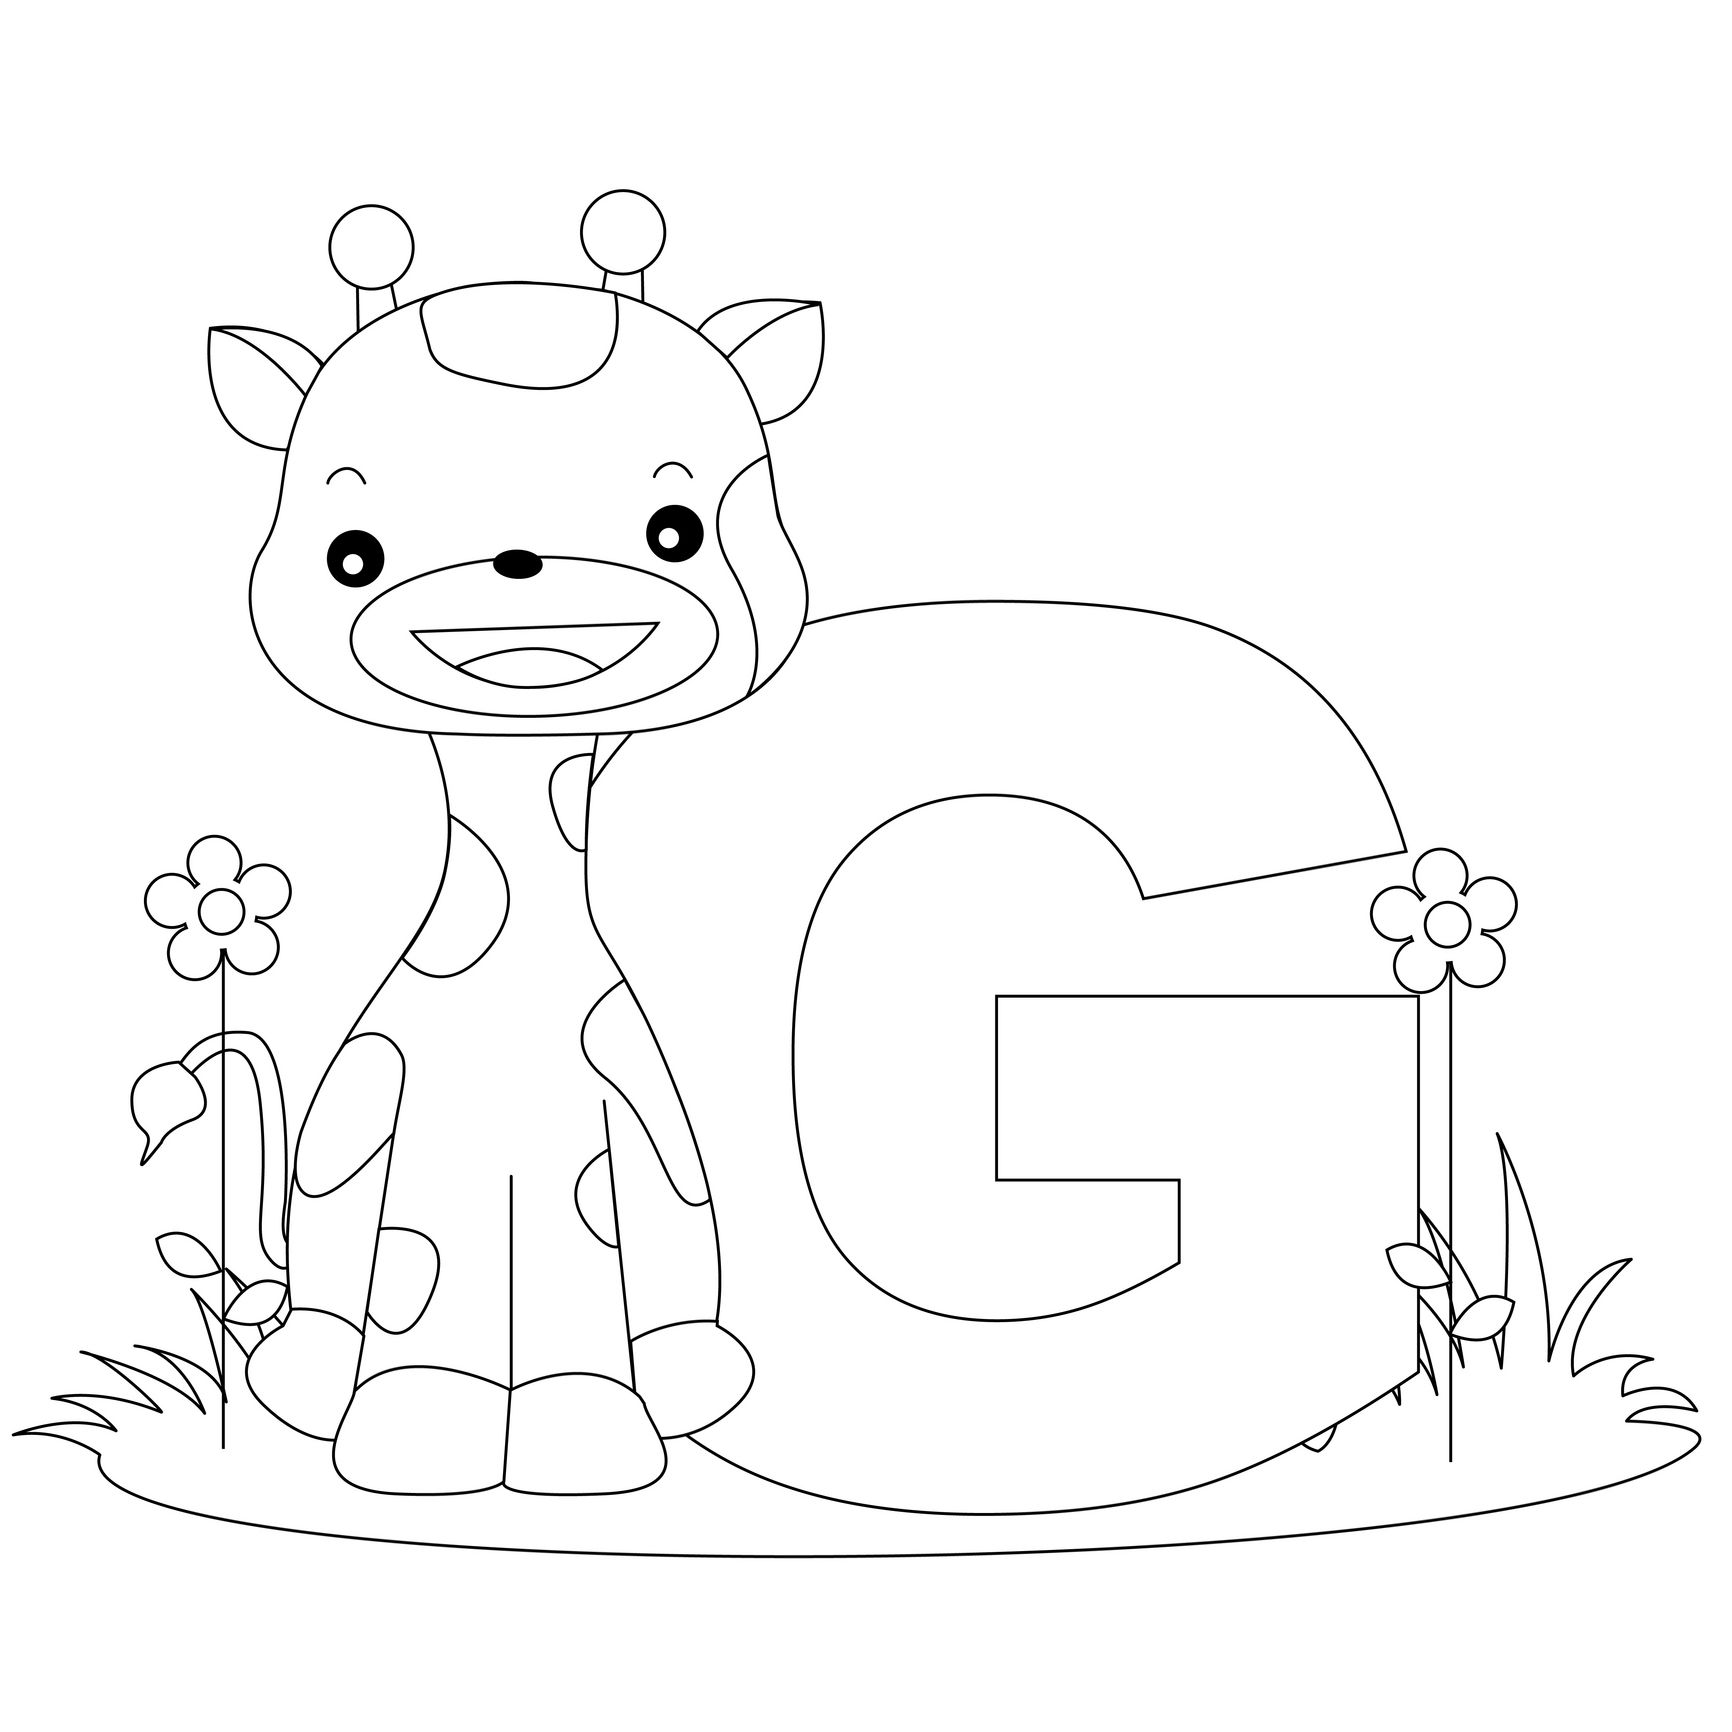 find this pin and more on alphabet craftsthe letter g printable - Alphabet Coloring Pages For Kids